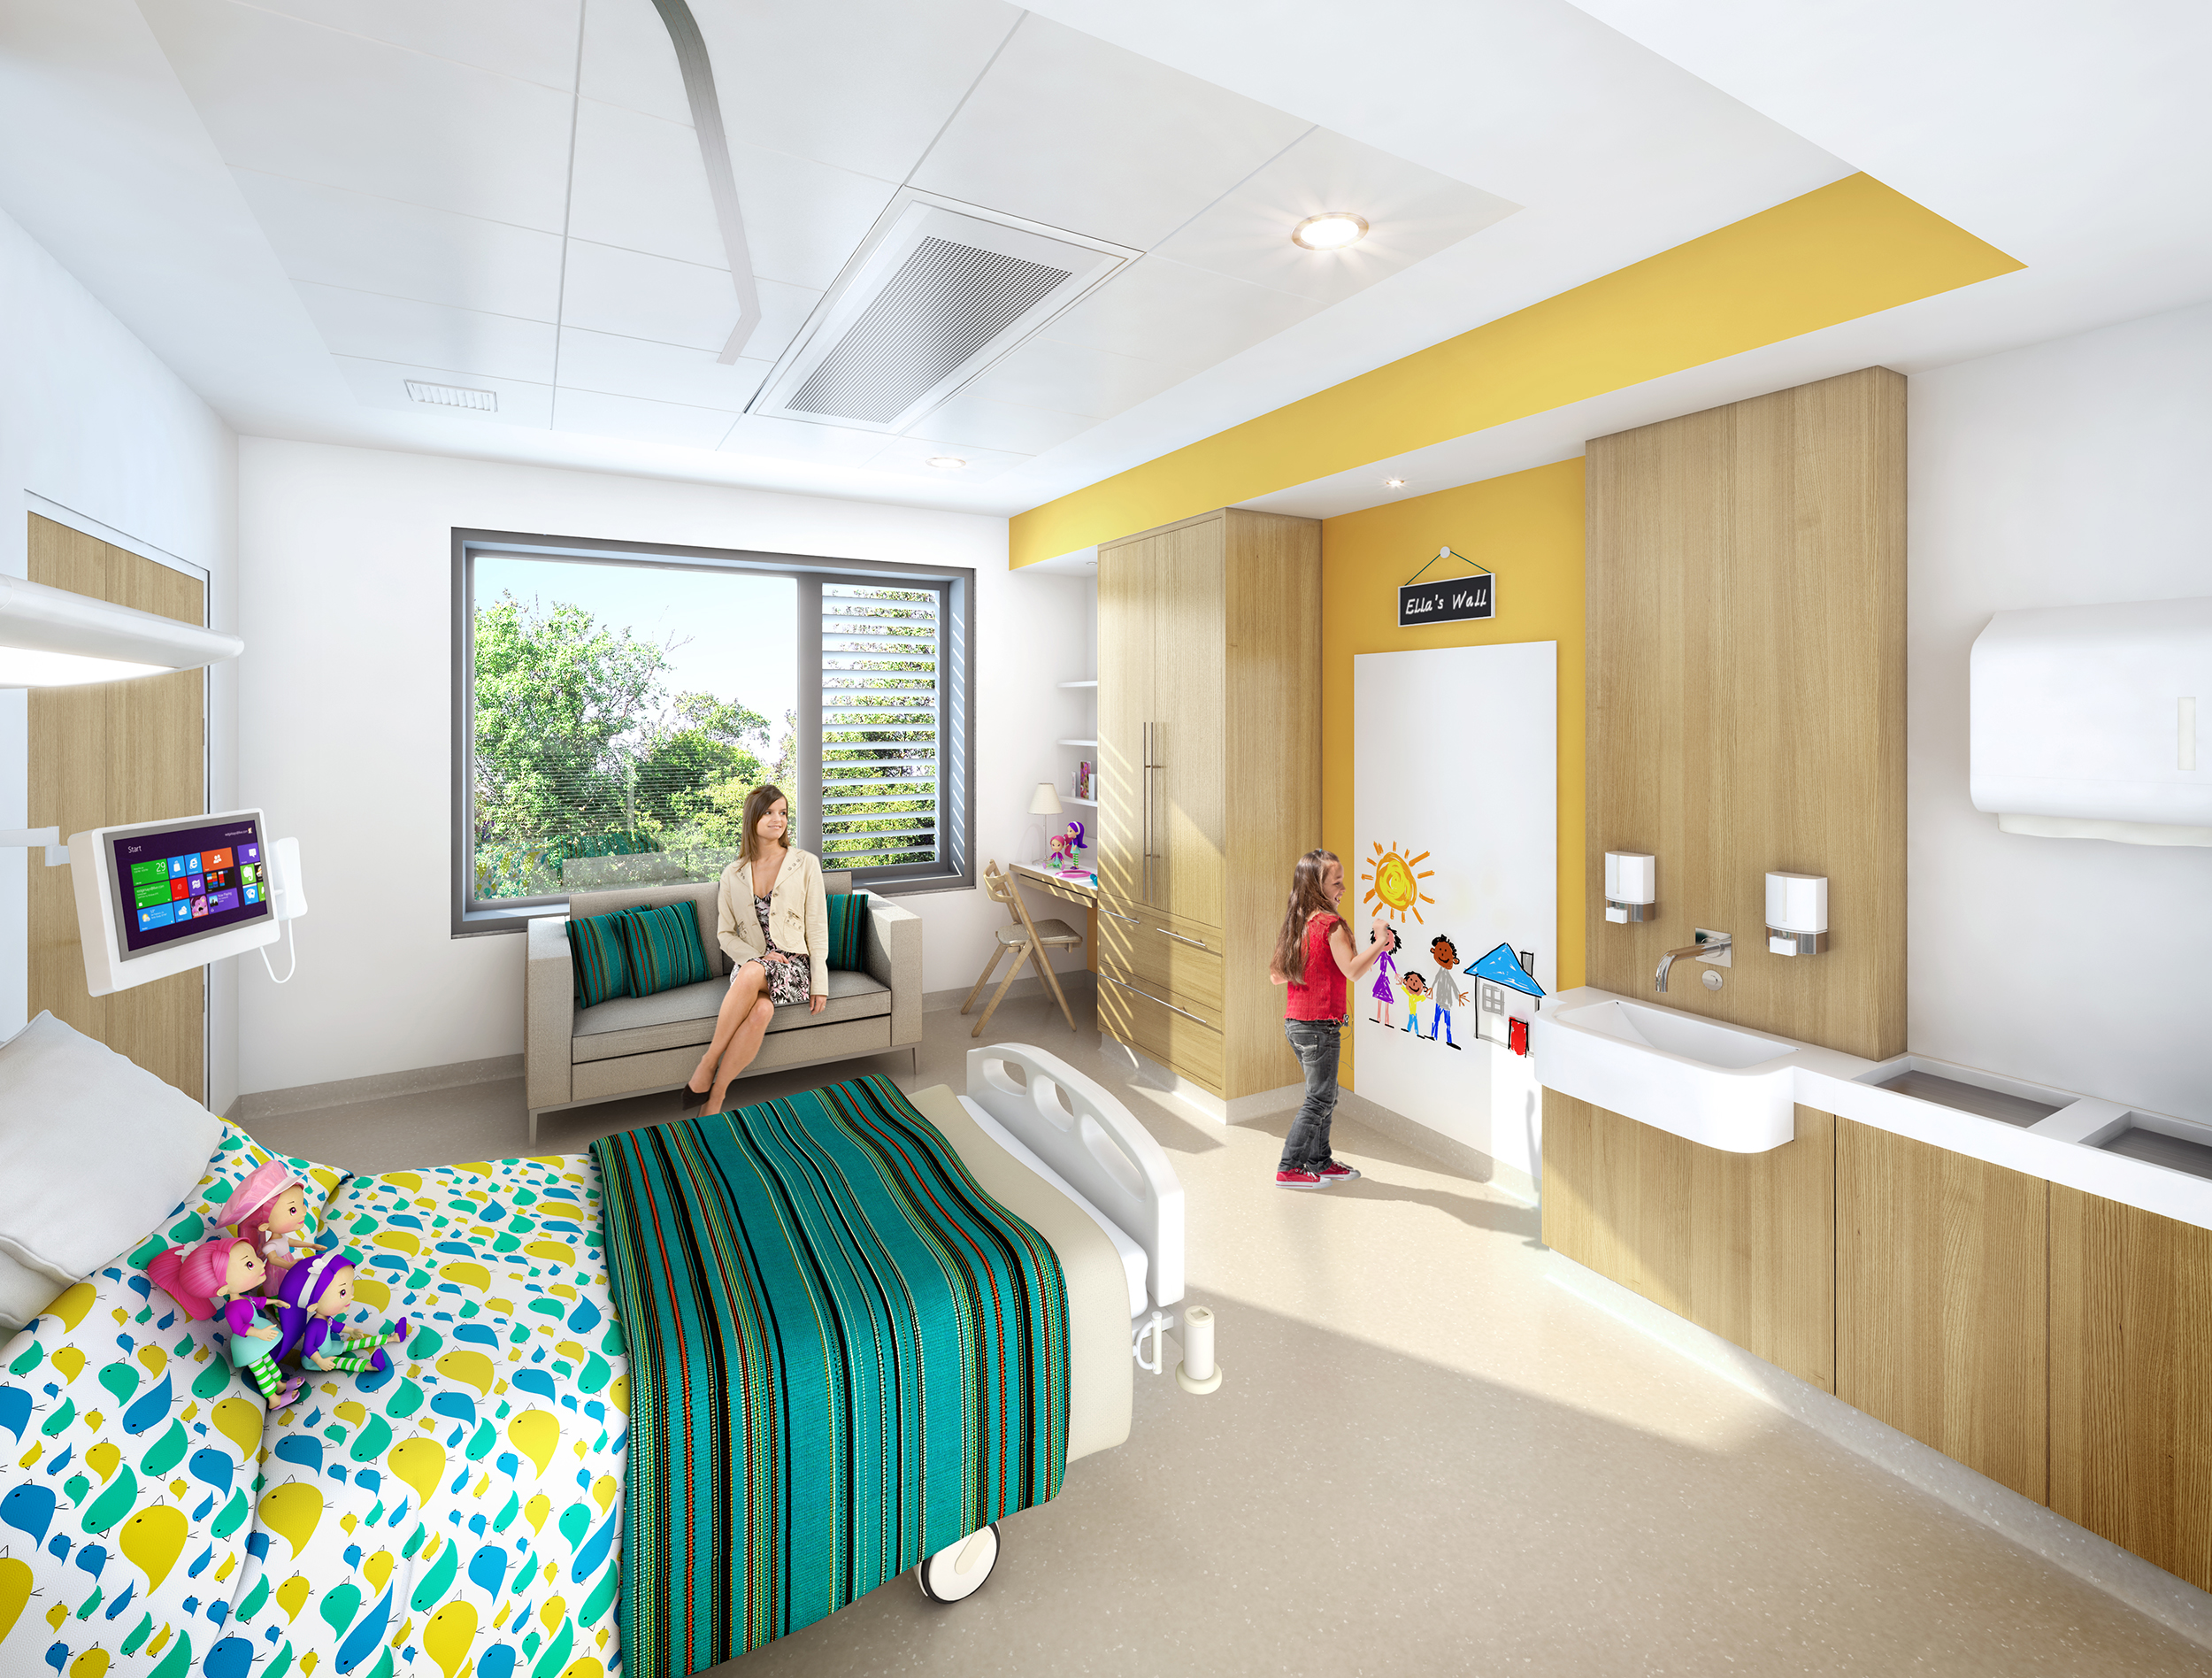 CGI-hospital-healthcare-bedroom-childrens-ward.jpg